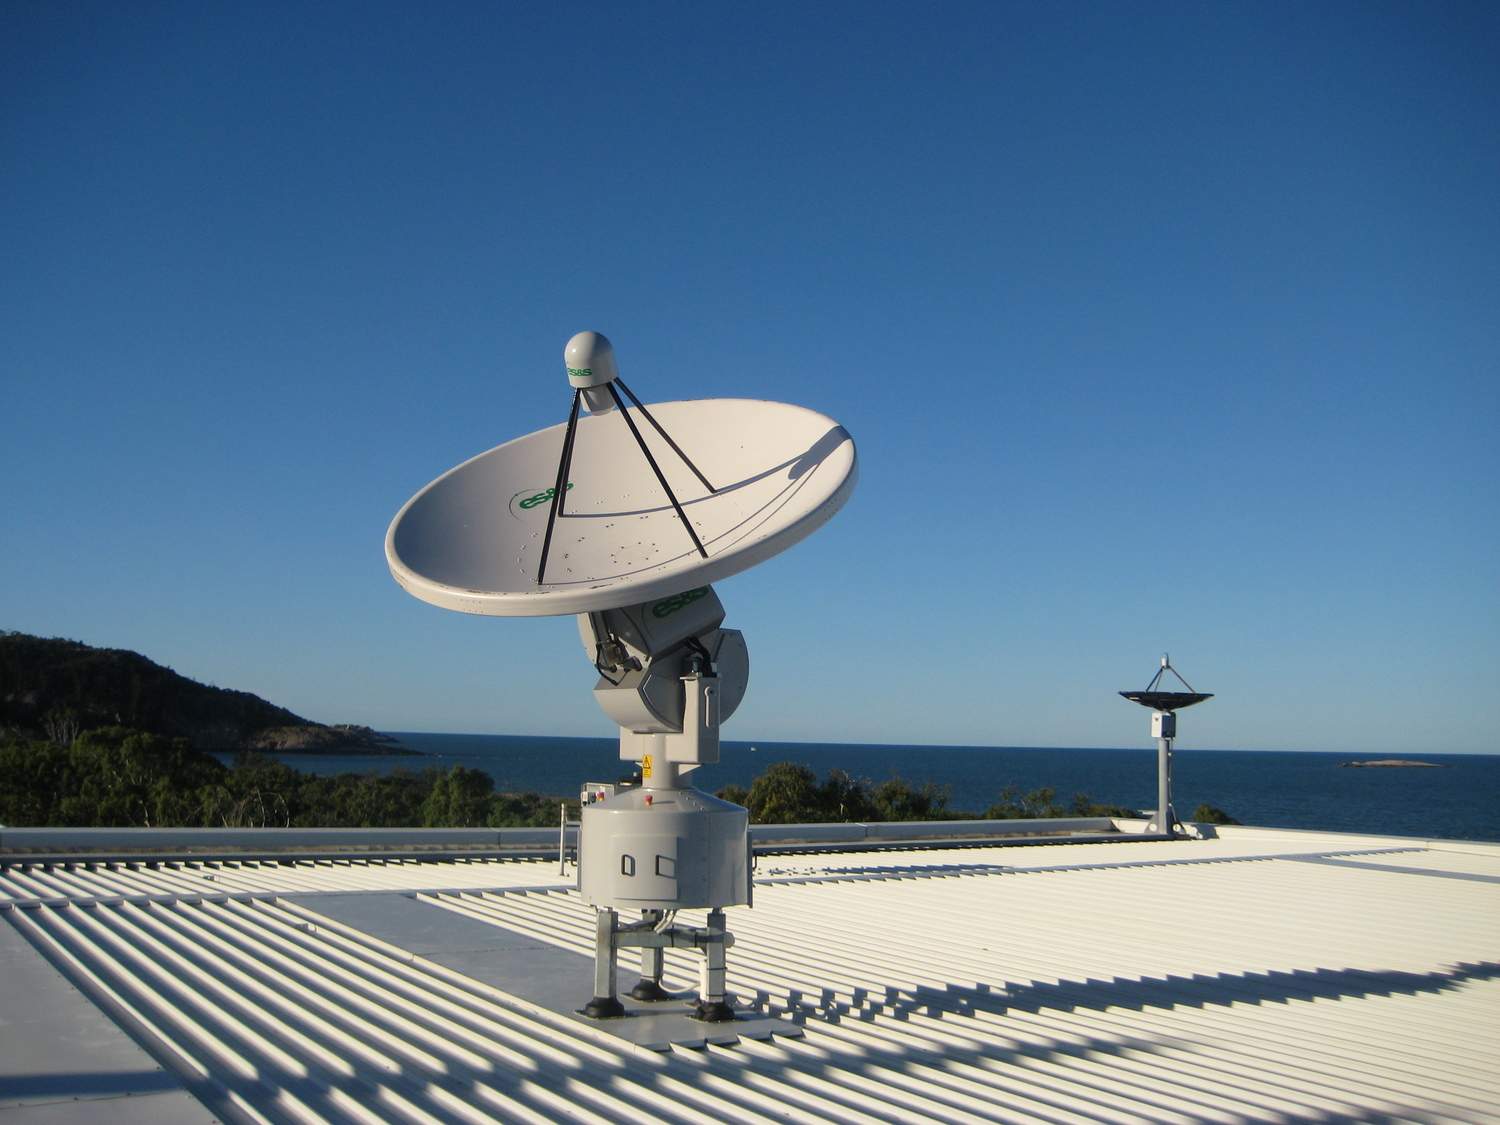 S-band Weather Radar from EEC — ESS Weathertech